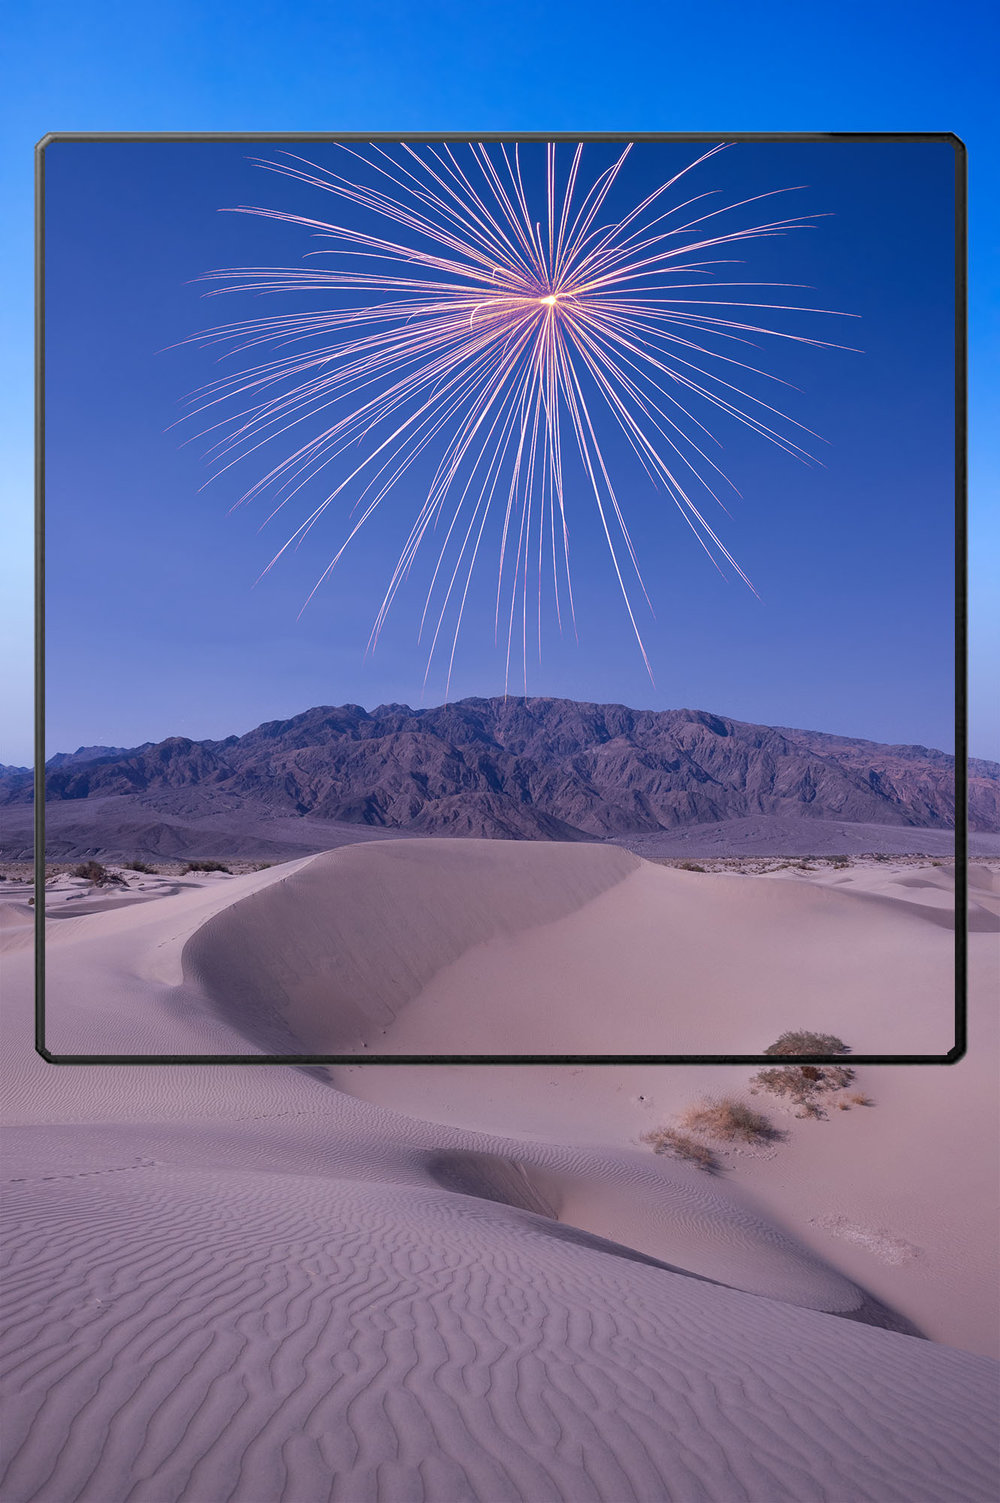 FIREWORKS DEATH VALLEY_DSC8245_Chris Nicholson product.jpg